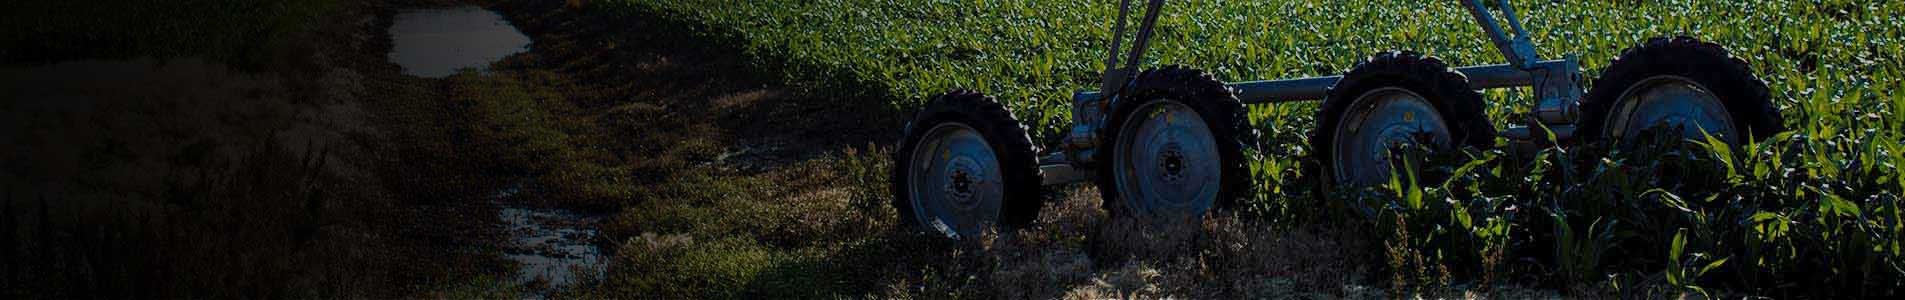 valley gearbox for center pivot irrigation system - made in the usa